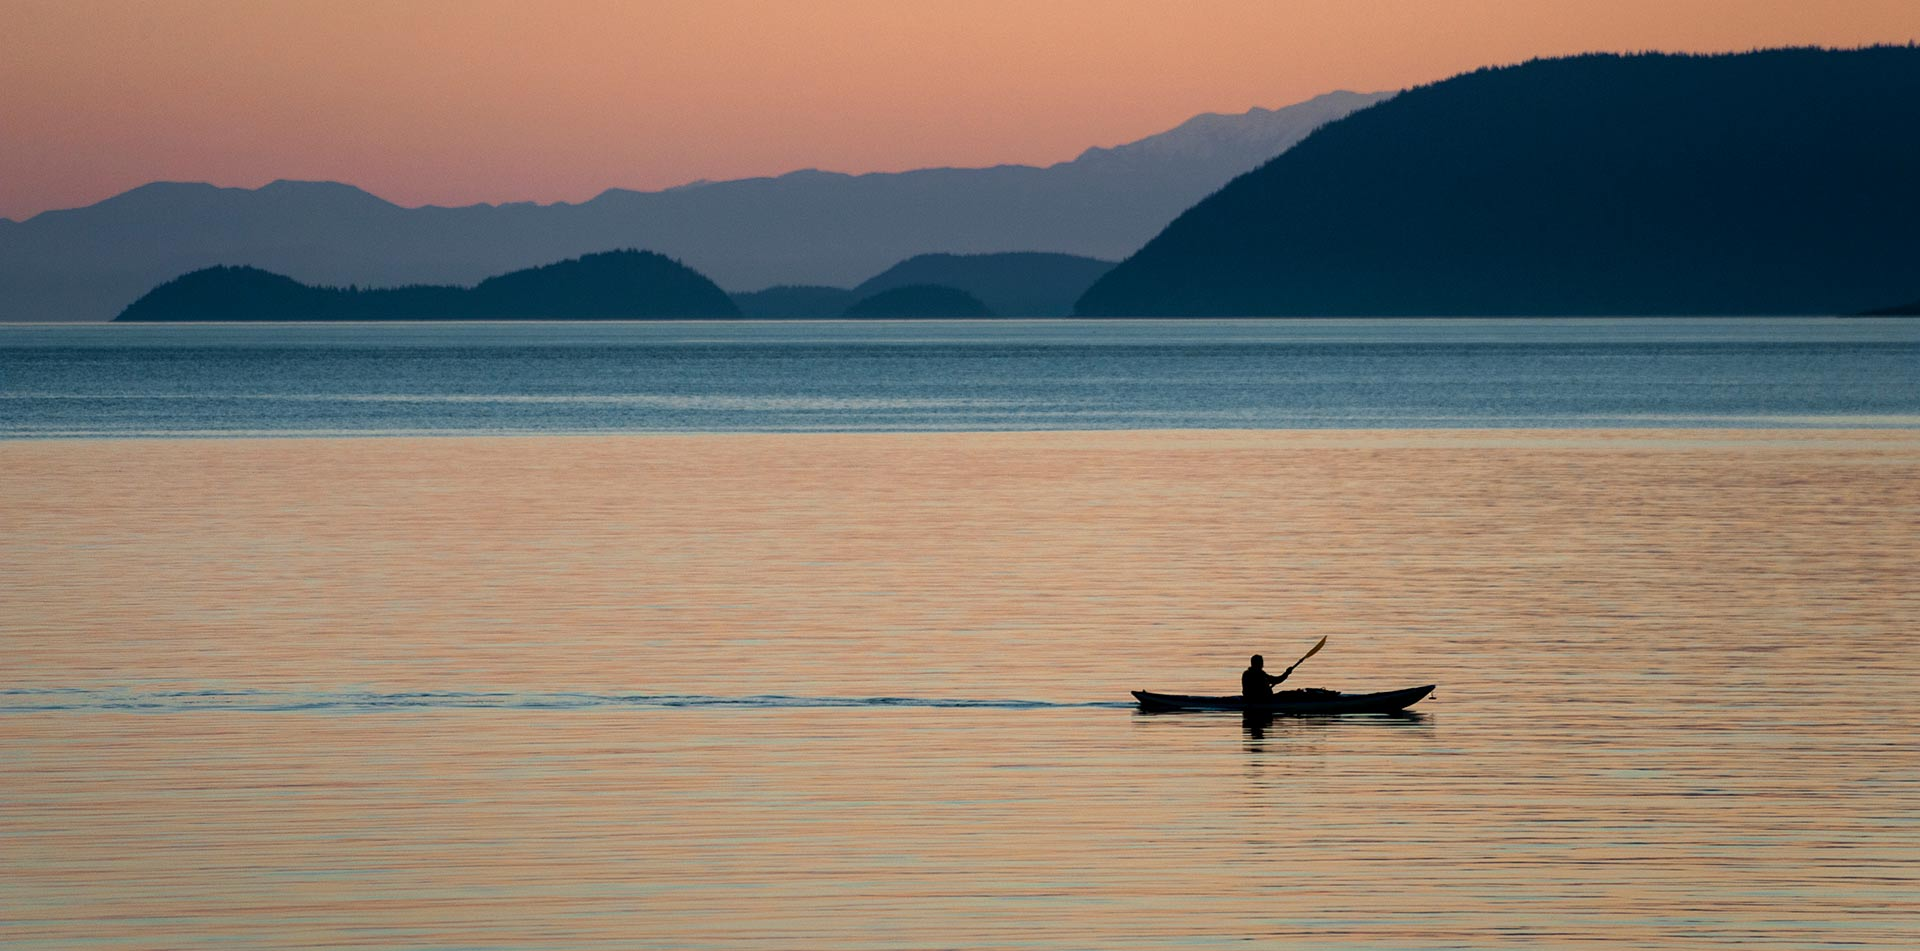 US Pacific Northwest Puget Sound scenic Orcas Island colorful sunset man kayaking calm water - luxury vacation destinations